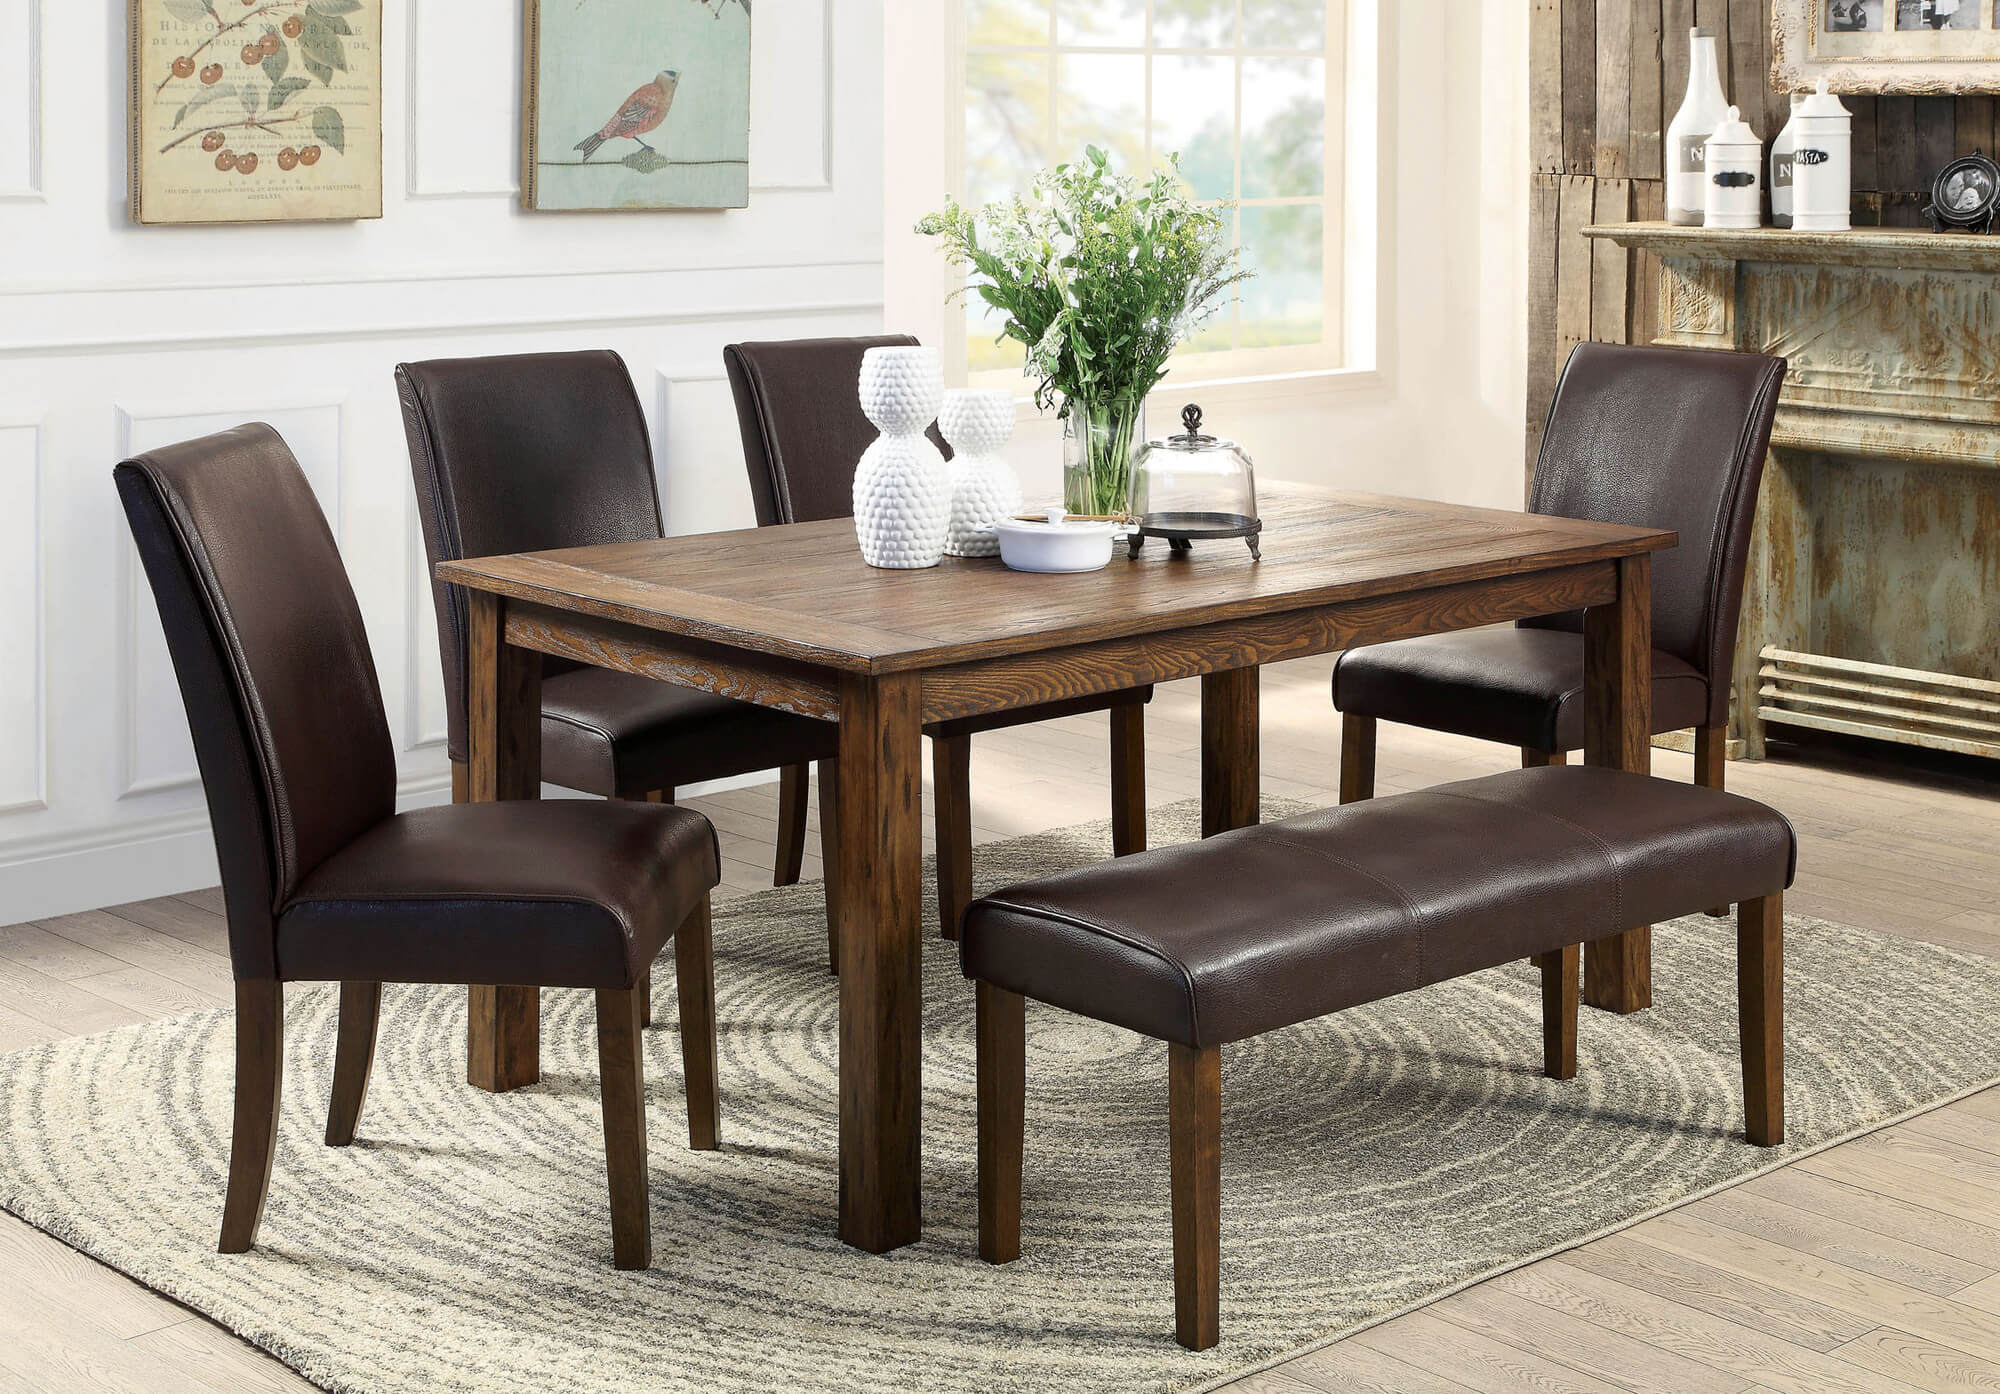 dining room sets bench seating square kitchen table Here s a rustic rectangle dining table with fully cushioned chairs and bench This look works